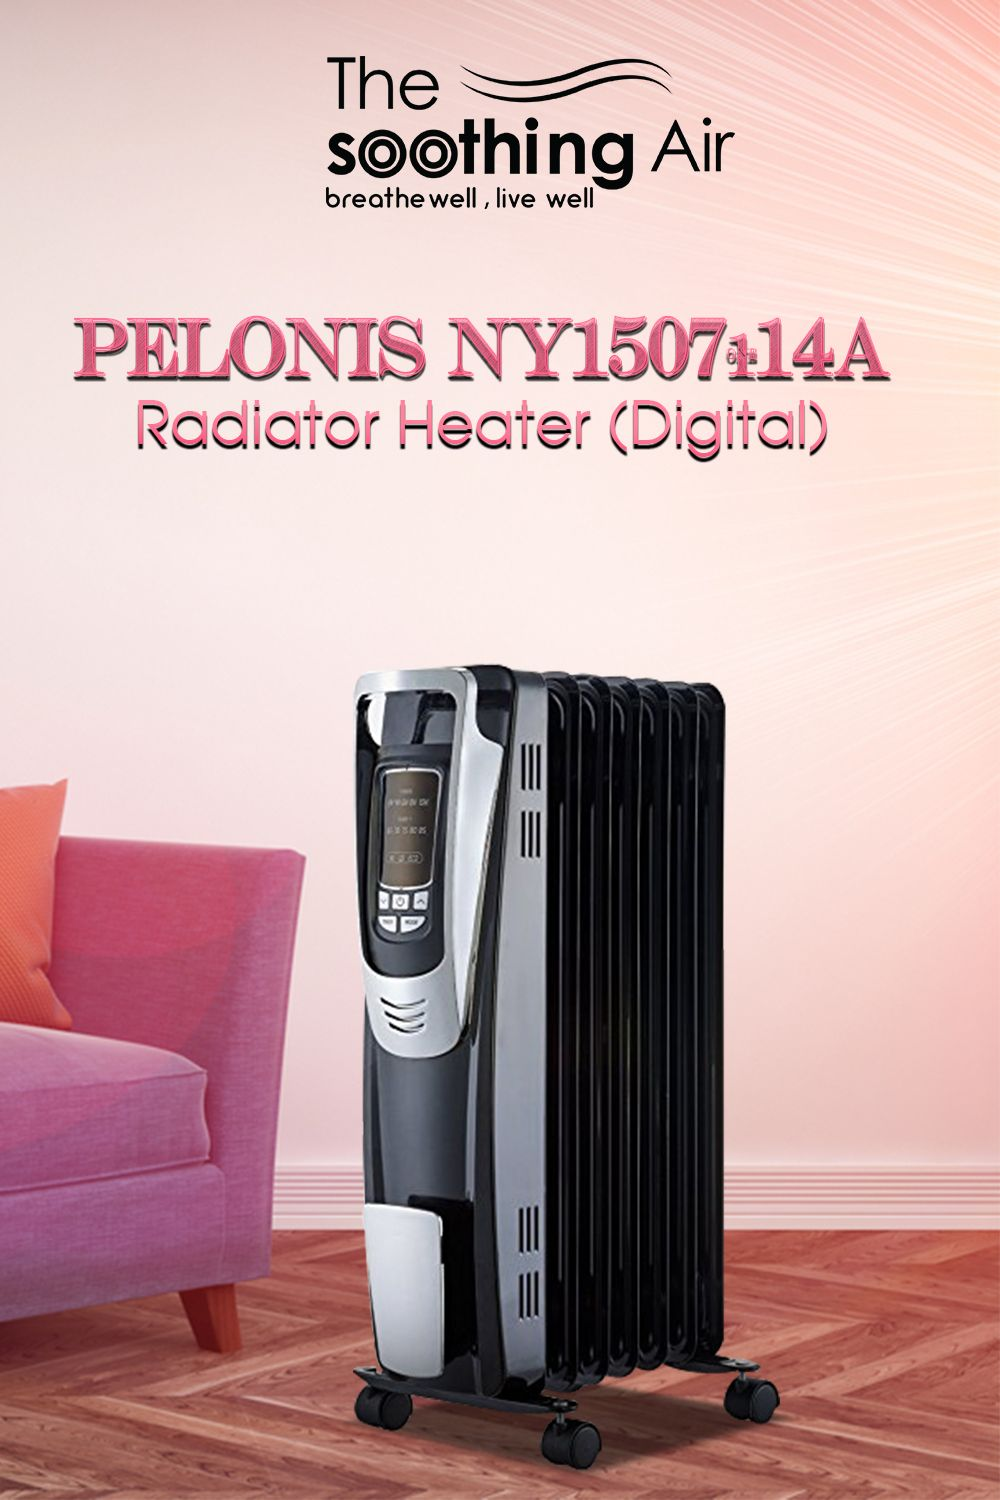 Top 10 Oil Filled Radiant Heaters Dec 2019 Reviews And Buyers Guide Oil Filled Radiator Oil Heater Radiant Heaters